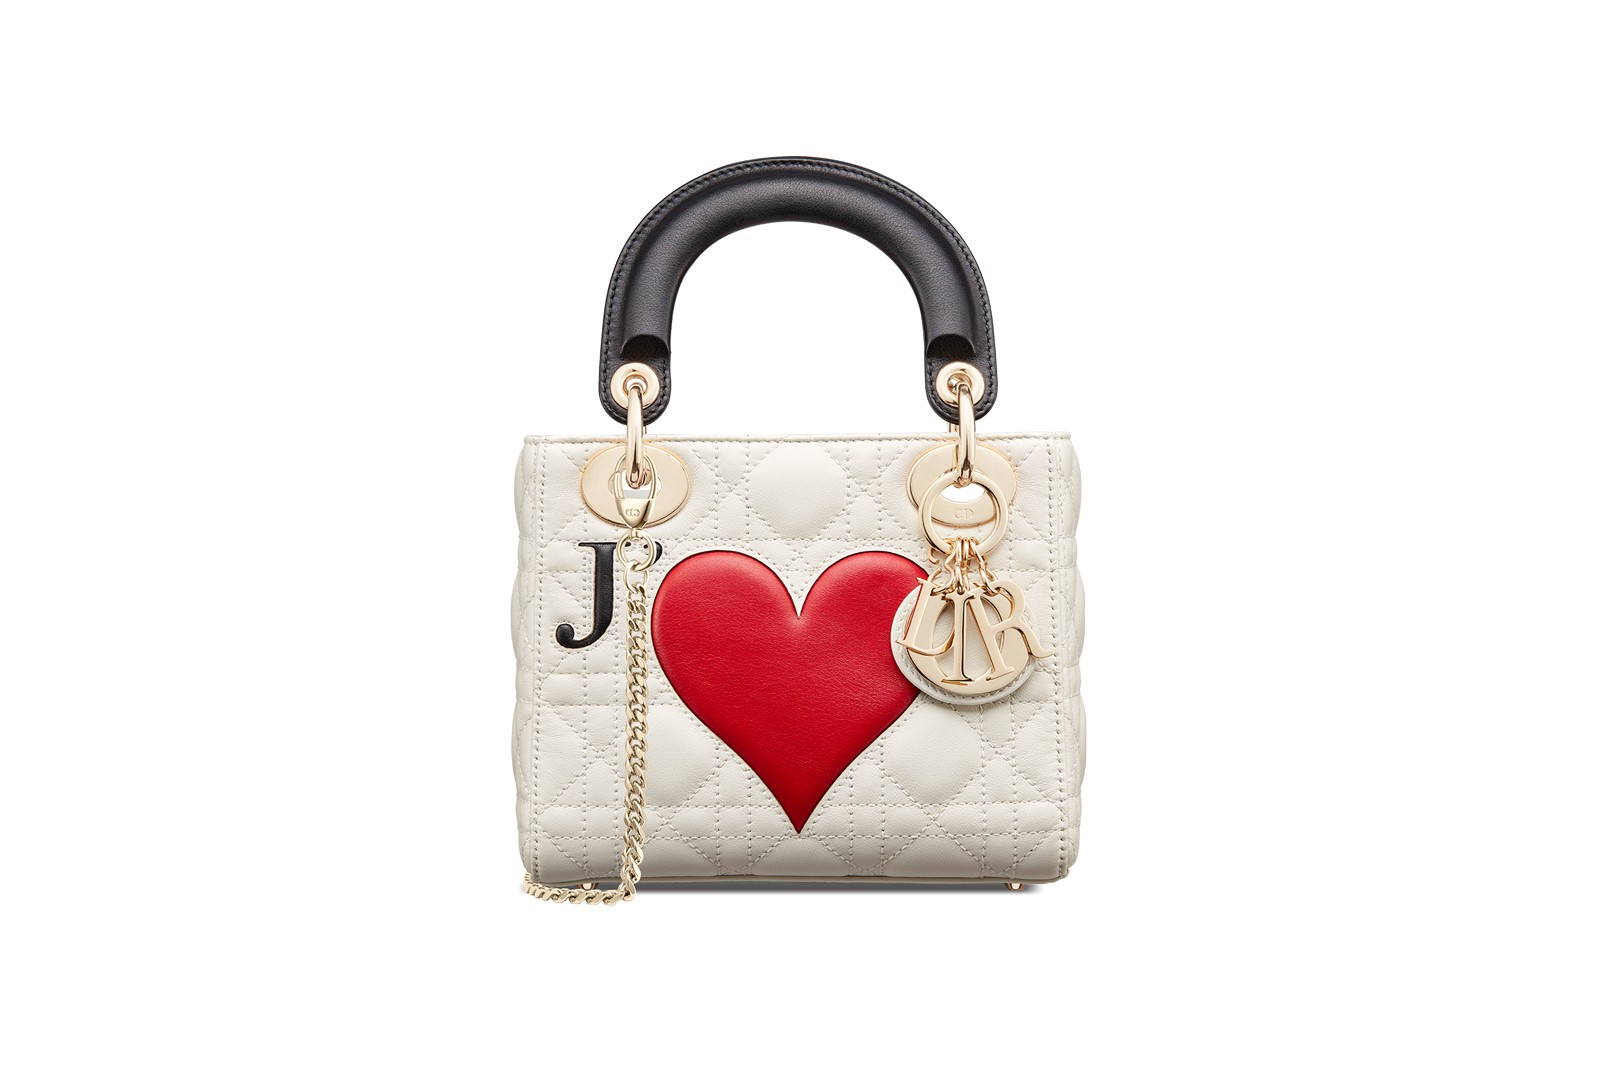 Dior celebrates love with its Dioramour line